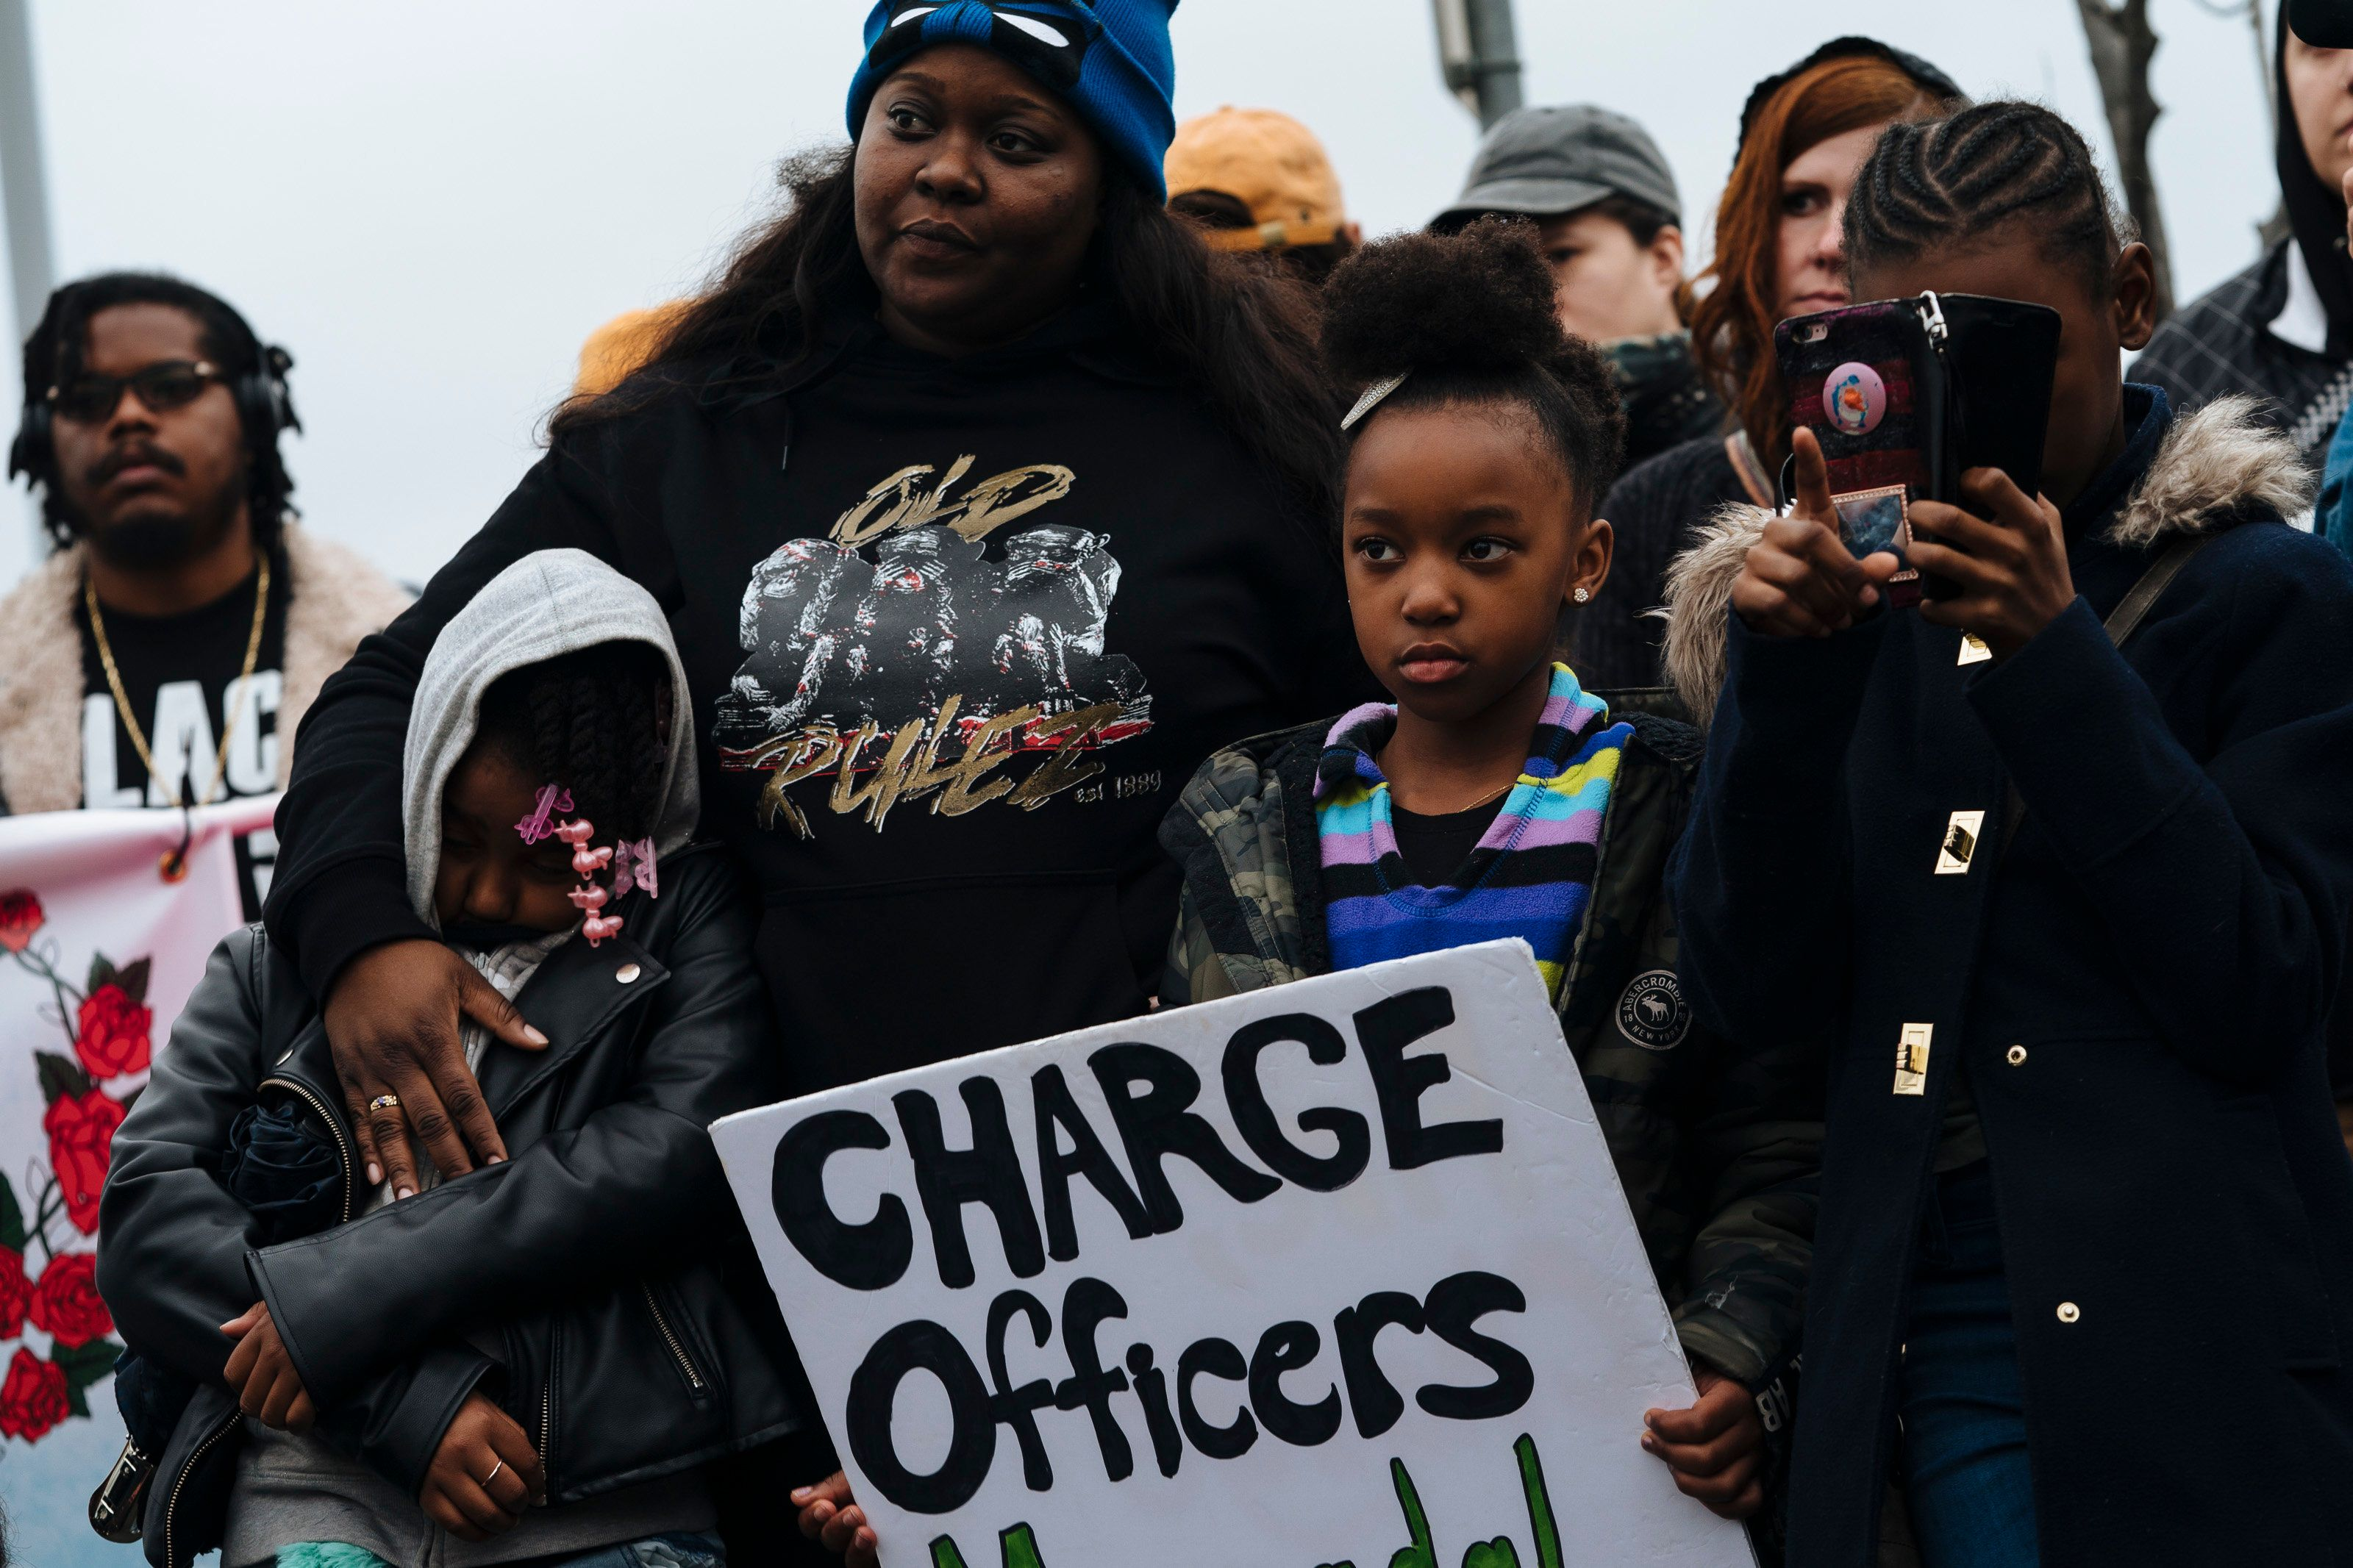 SACRAMENTO, CA - MARCH 02: Demonstrators gathered outside of the Sacramento Police Department on March 2, 2019, in Sacramento, California. Sacramento County District Attorney Anne Marie Schubert announced Saturday that officers did not break any laws when they shot Stephon Clark in 2018. (Photo by Mason Trinca/Getty Images)